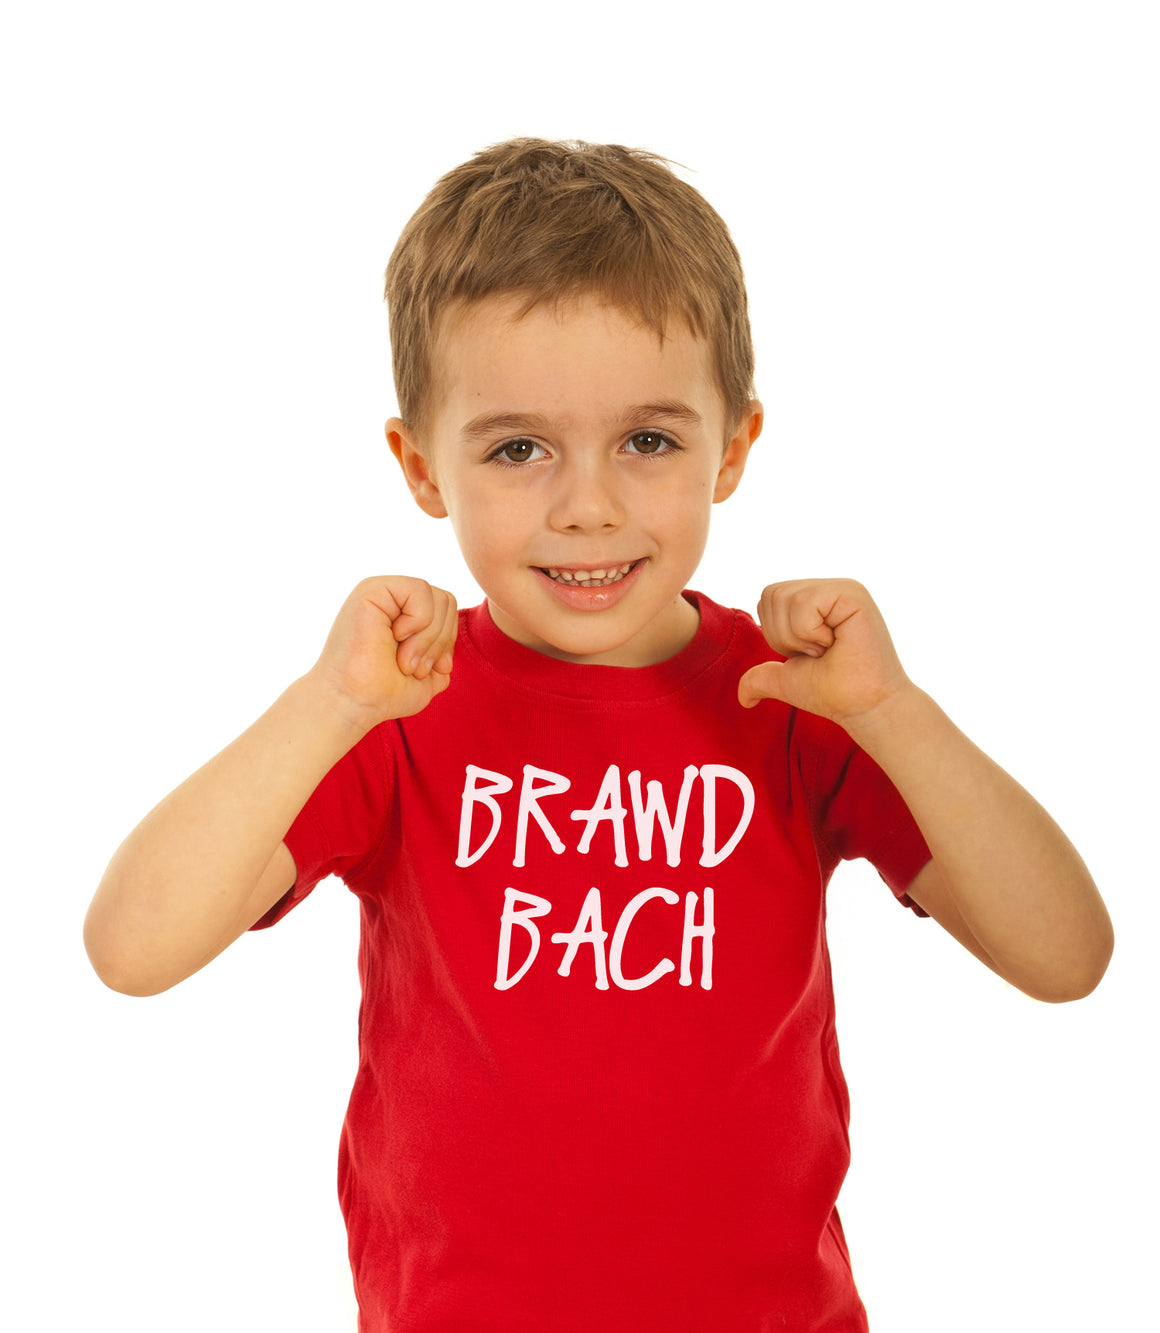 Children's Brawd Bach (Little Brother) - Welsh T-Shirt